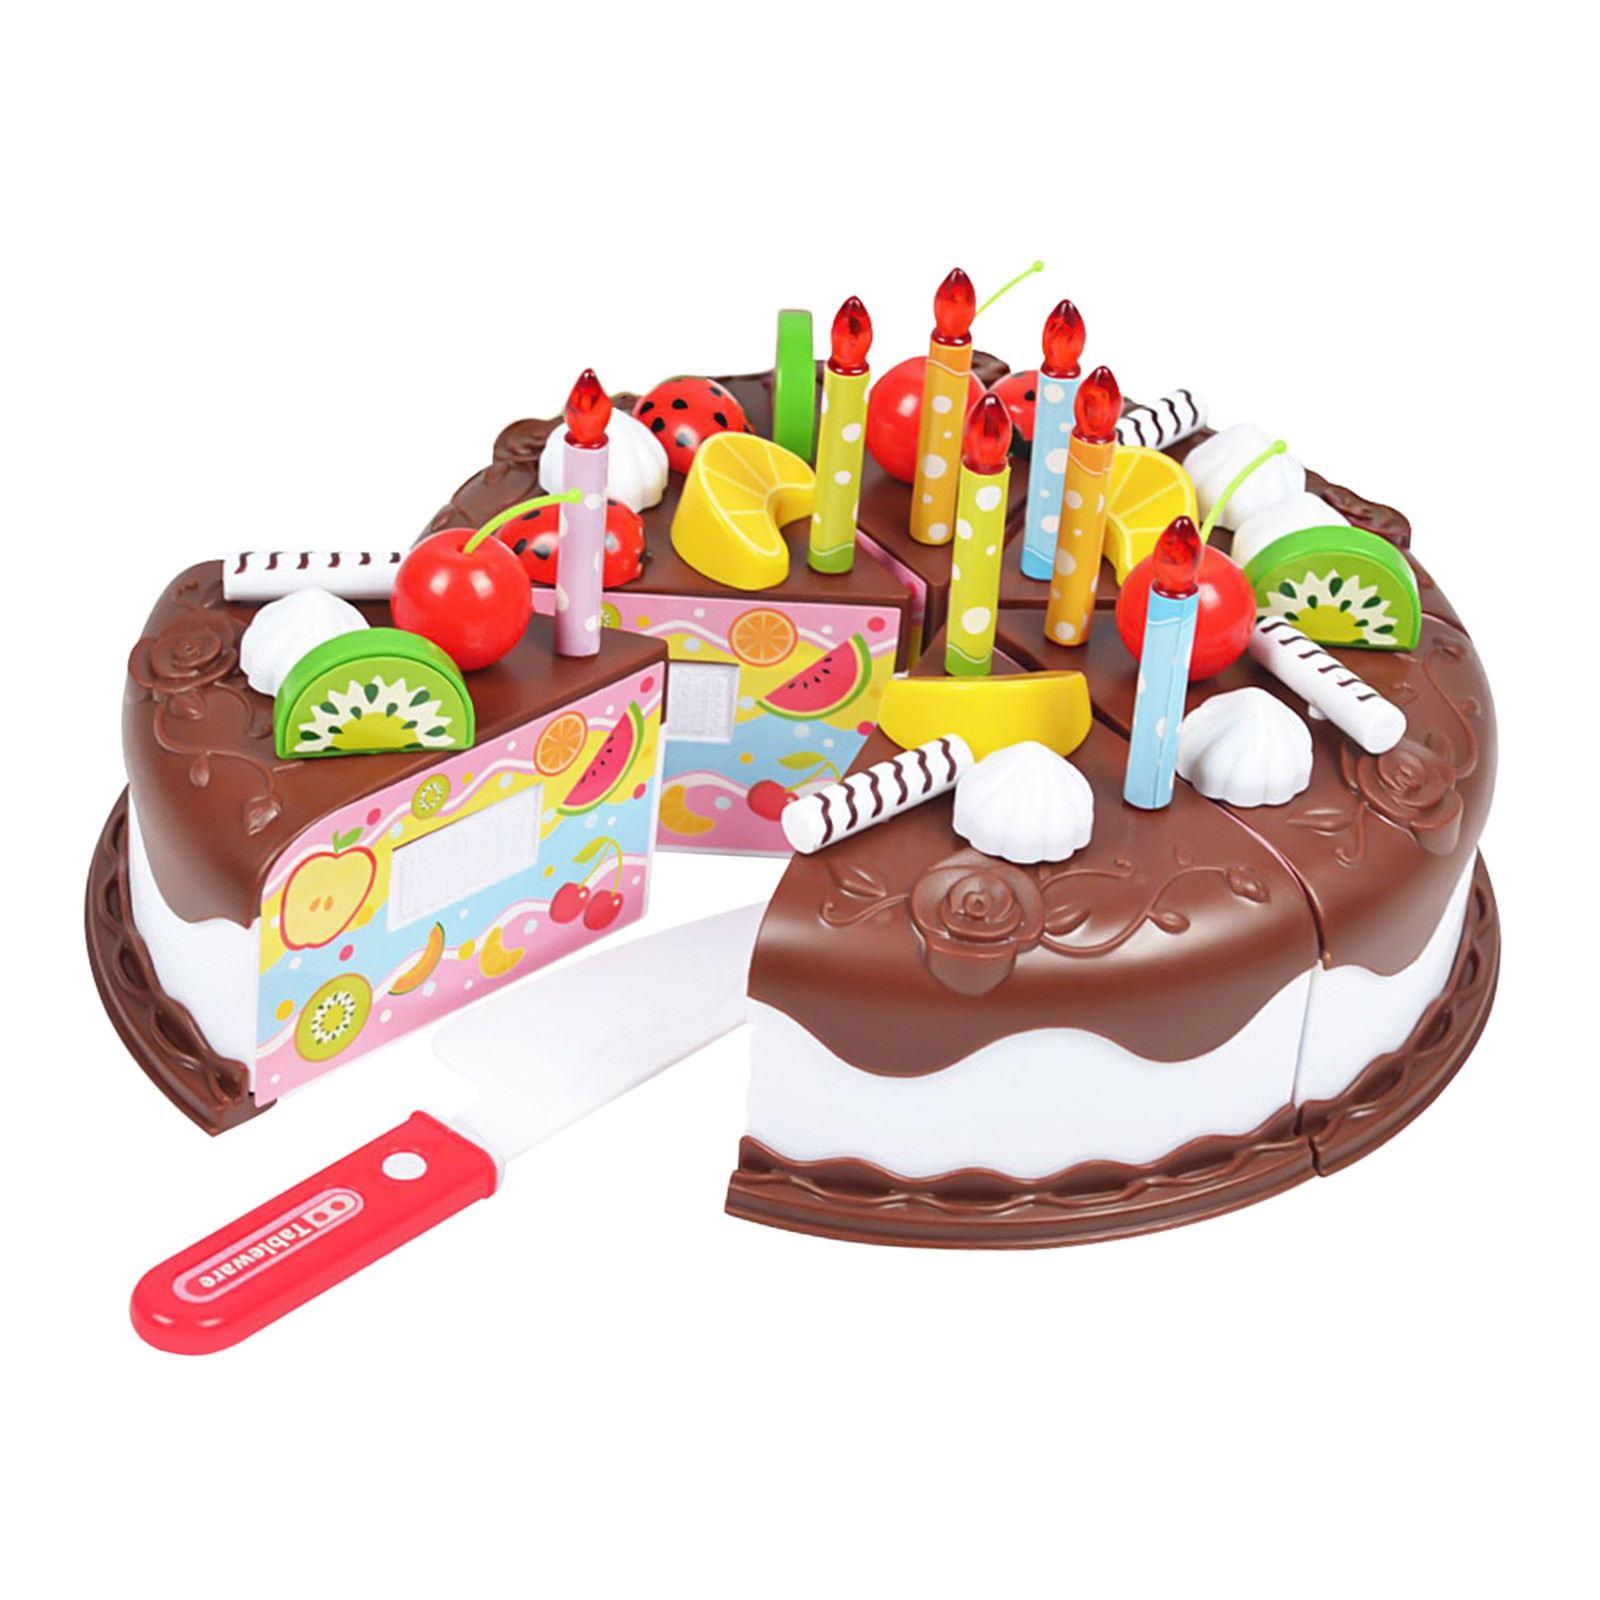 Pretend Play Food for Kids, Cutting Decorating Birthday Party Cake Toys Set with